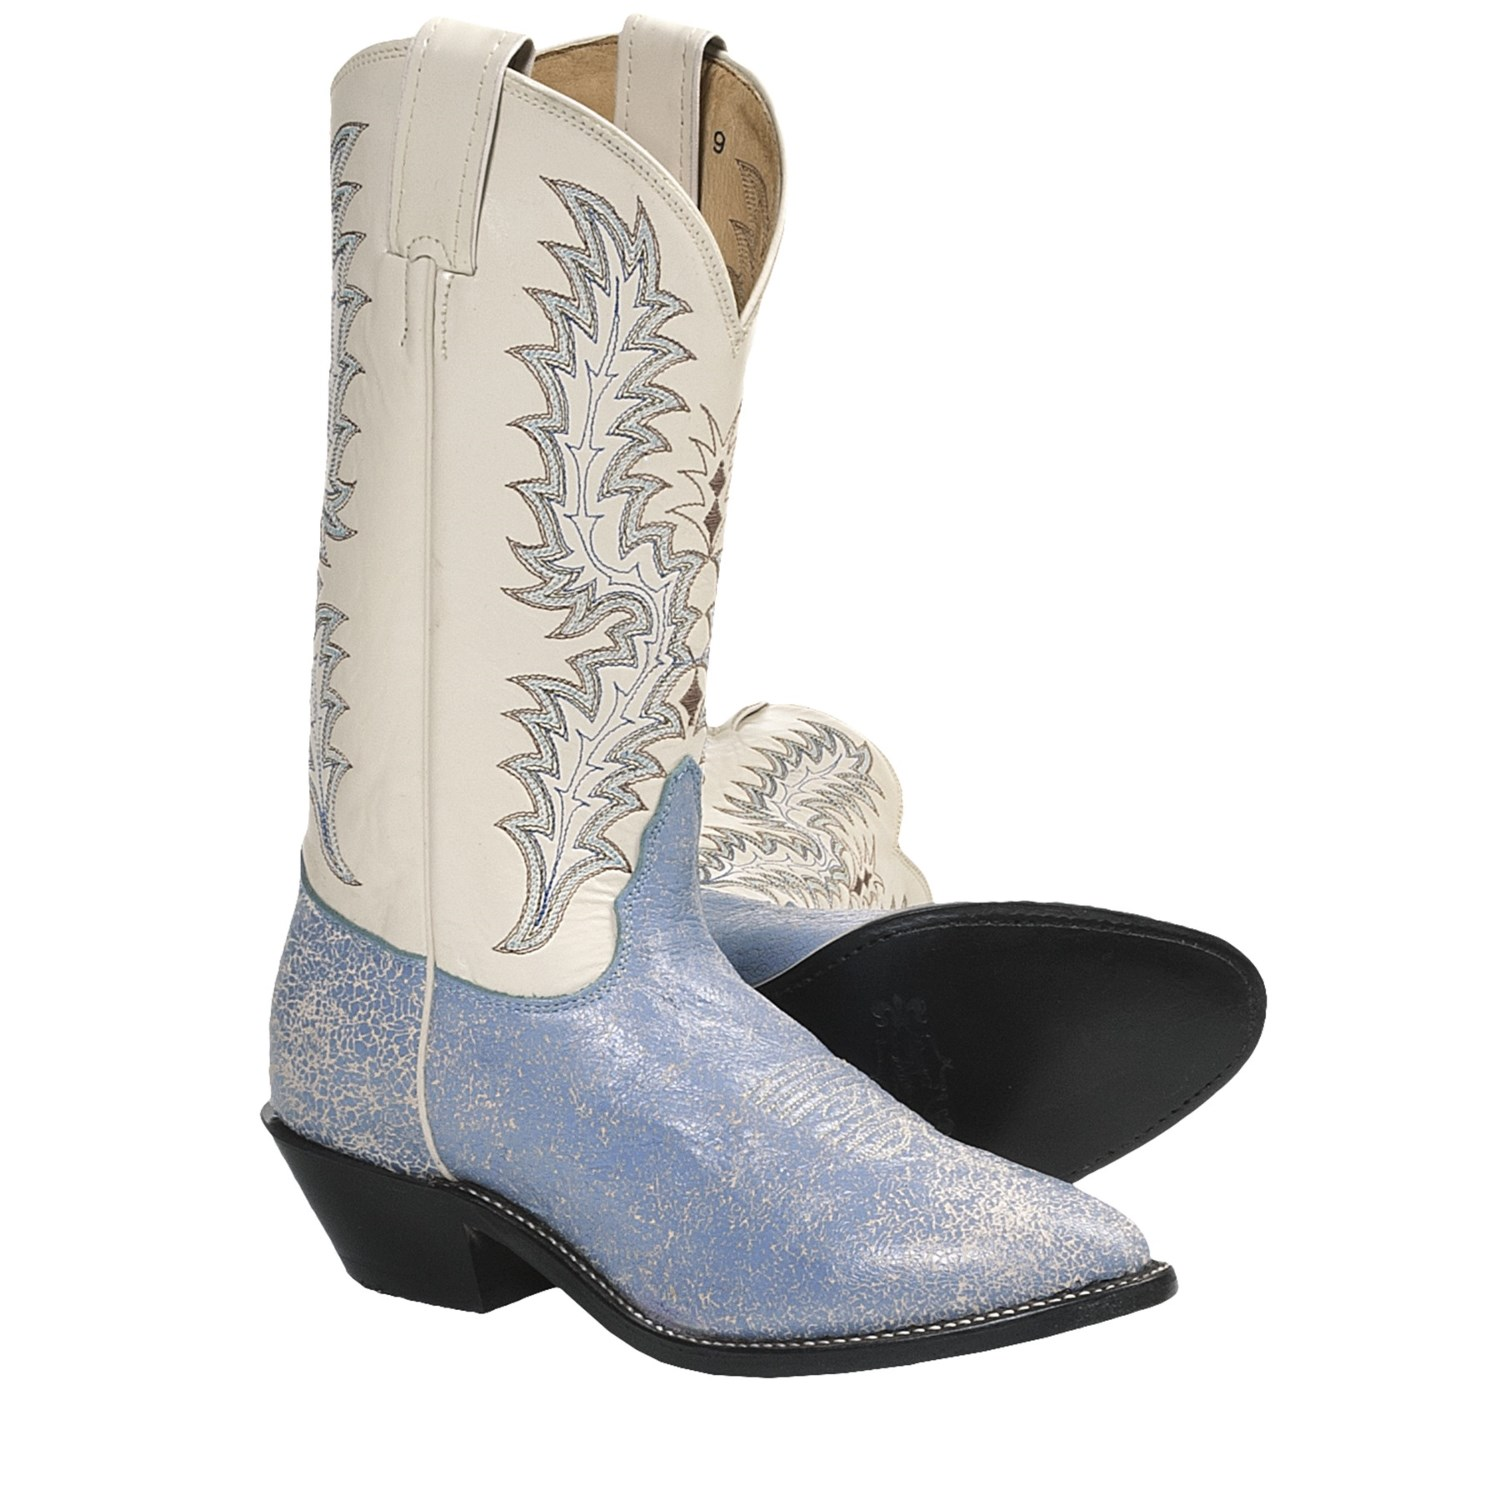 Luxury If There Is One Bootsjeans Combination That Not Only Goes Together Flawlessly, But Is Also One Of The Oldest Ways To Style Denim, Its Jeans With A Pair Of Perfectly Brokenin Cowboy Boots Cowboy Boots And Denim Grew Up Together, So It